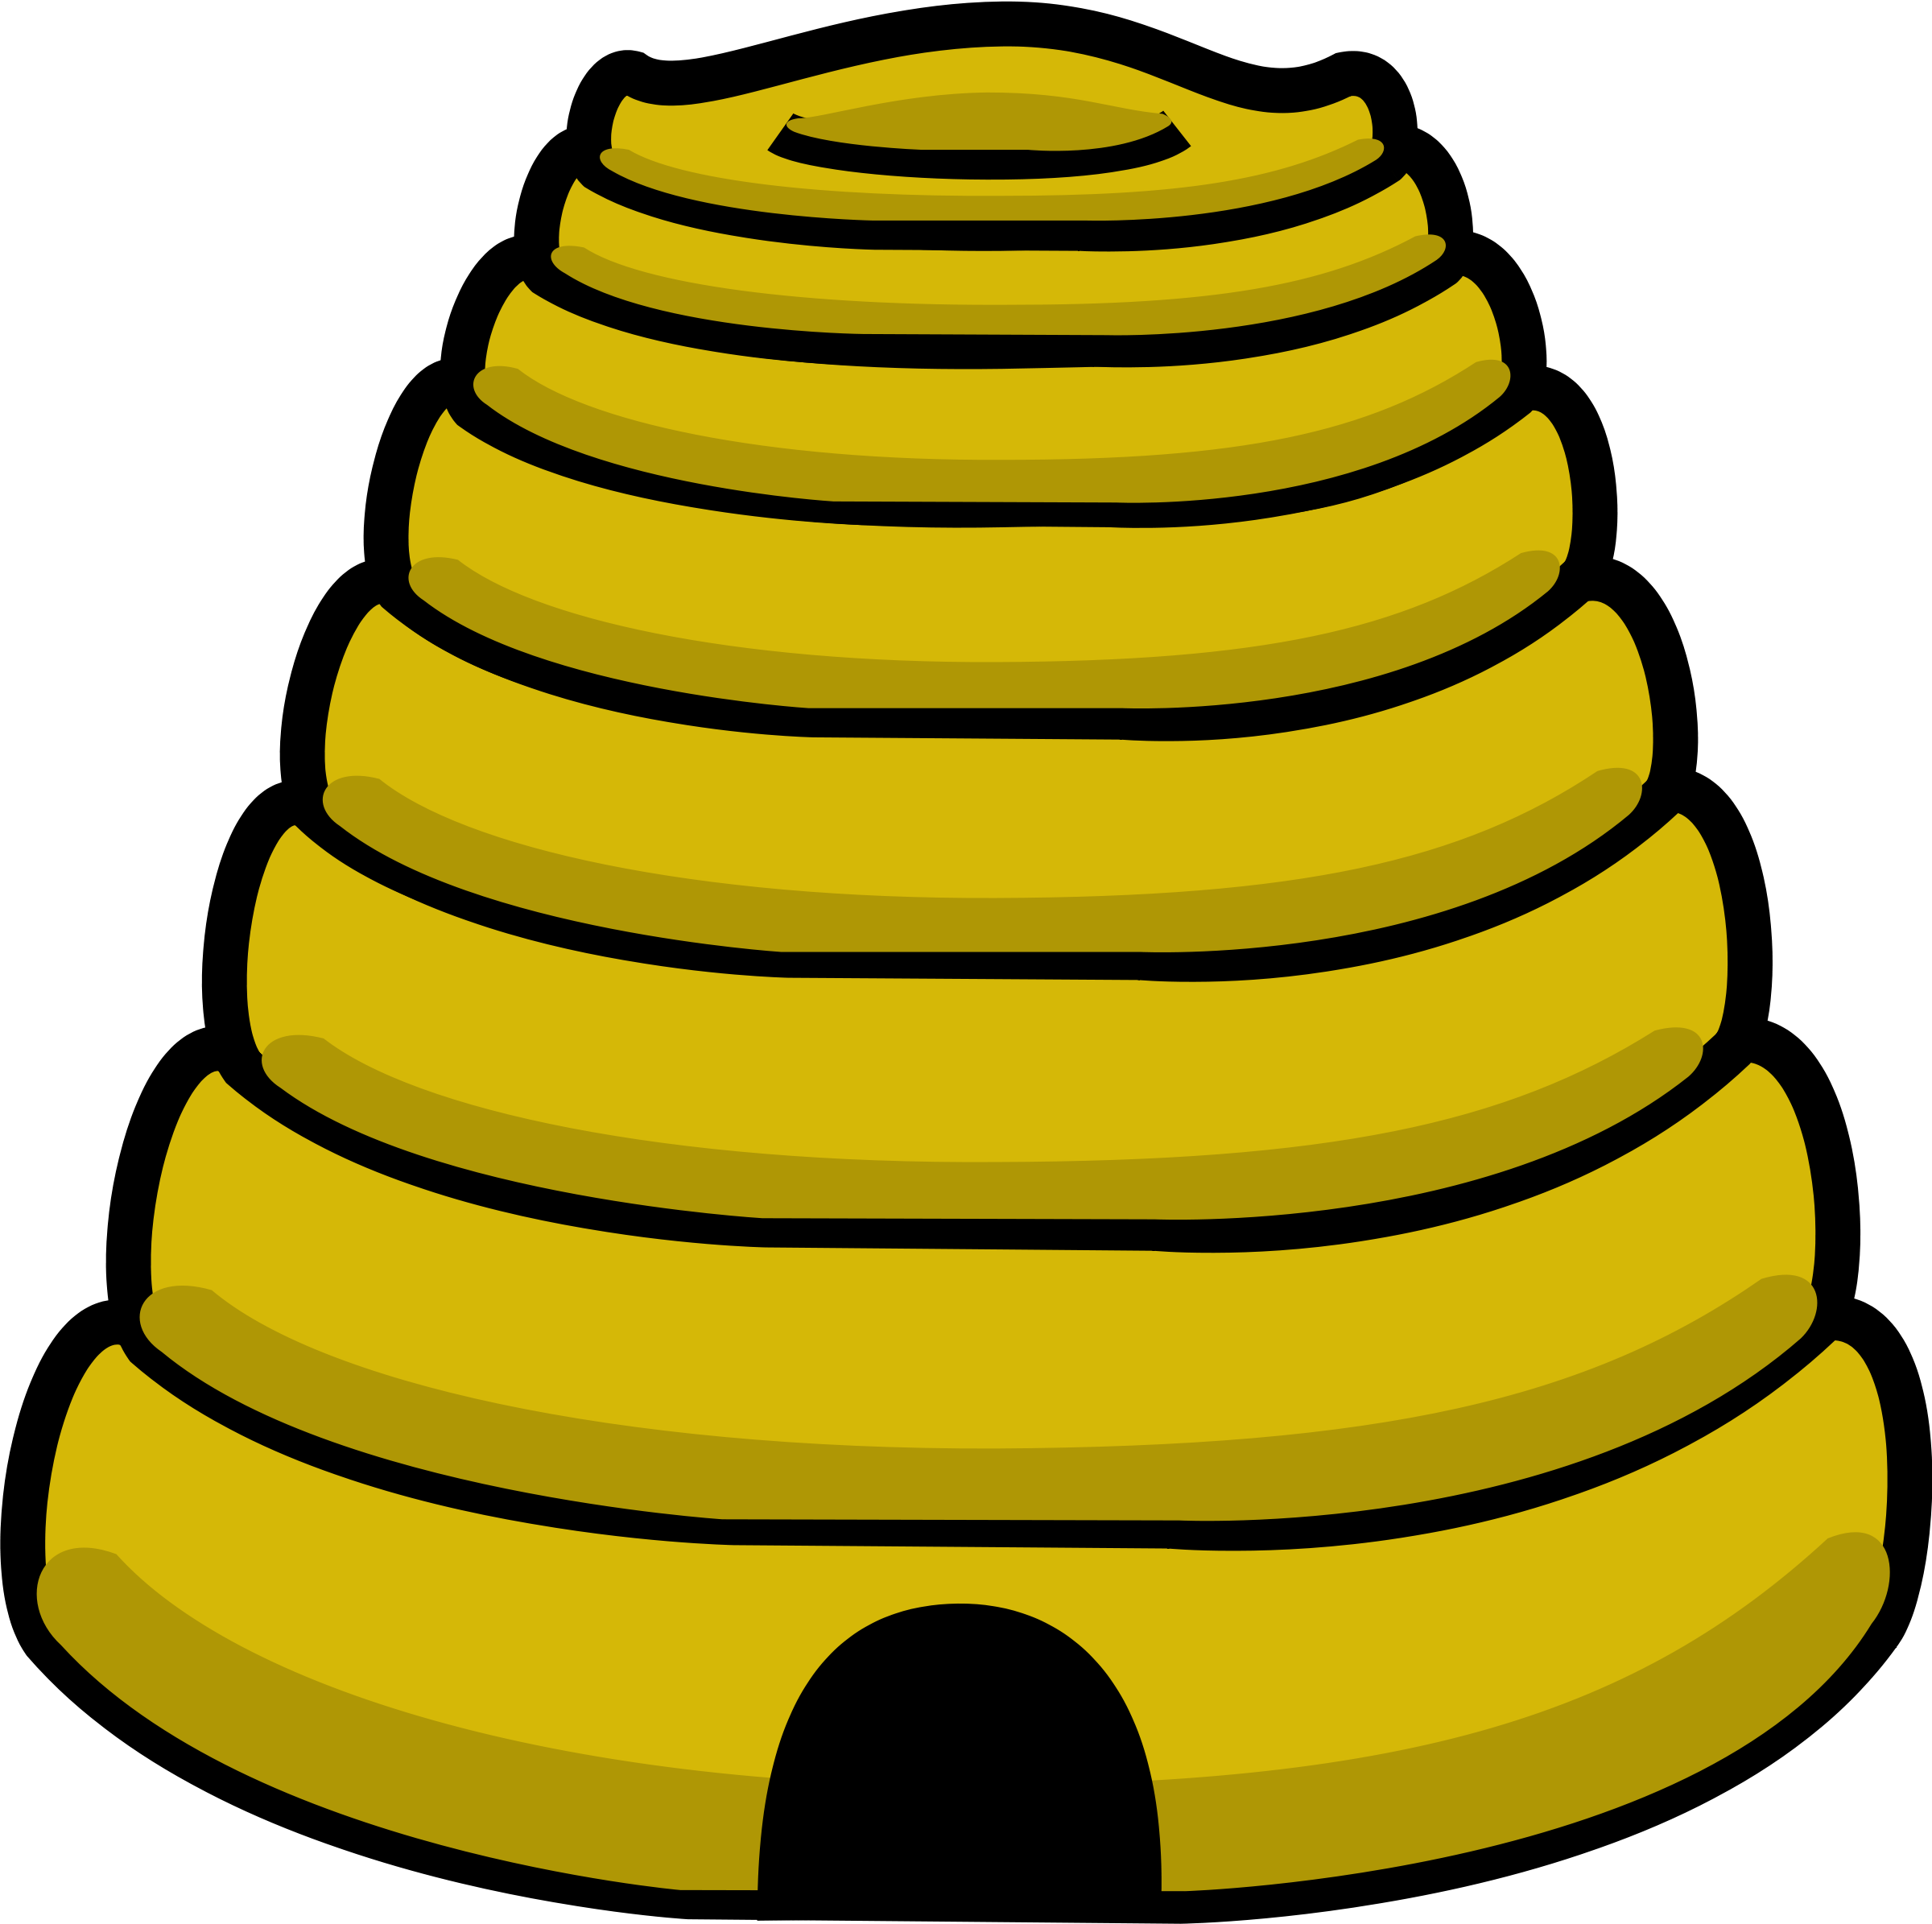 Hive clipart outline. Free bee images download